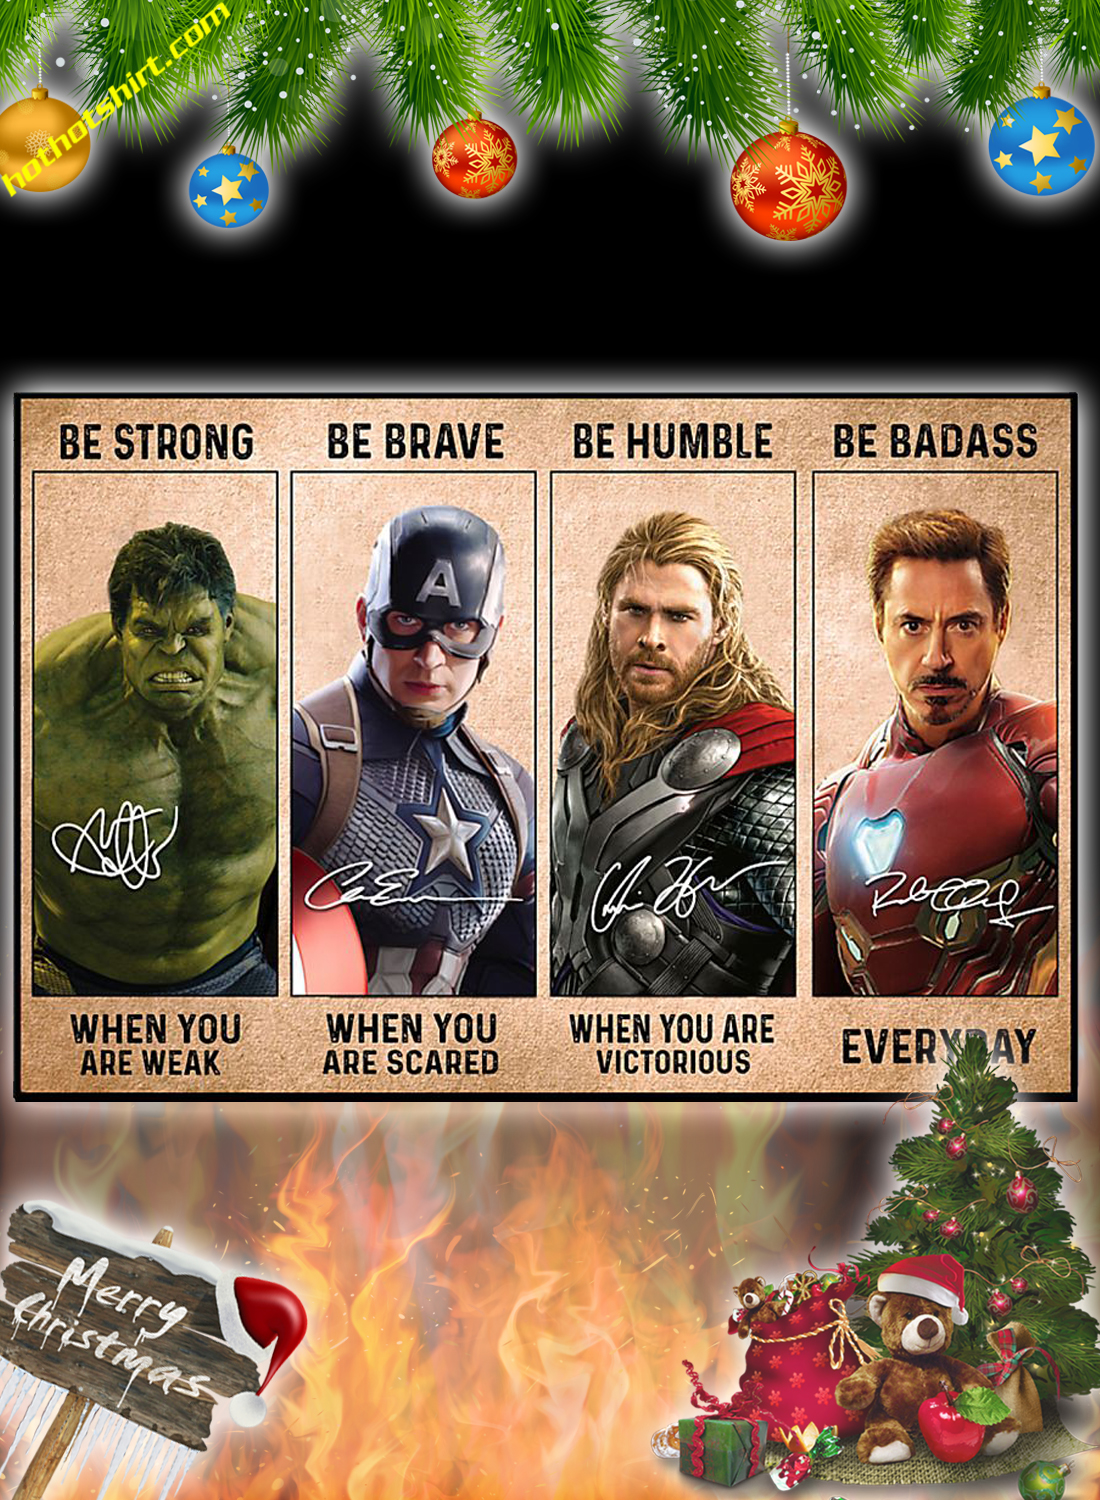 Avengers Marvel be strong be brave be humble be badass poster and canvas 1